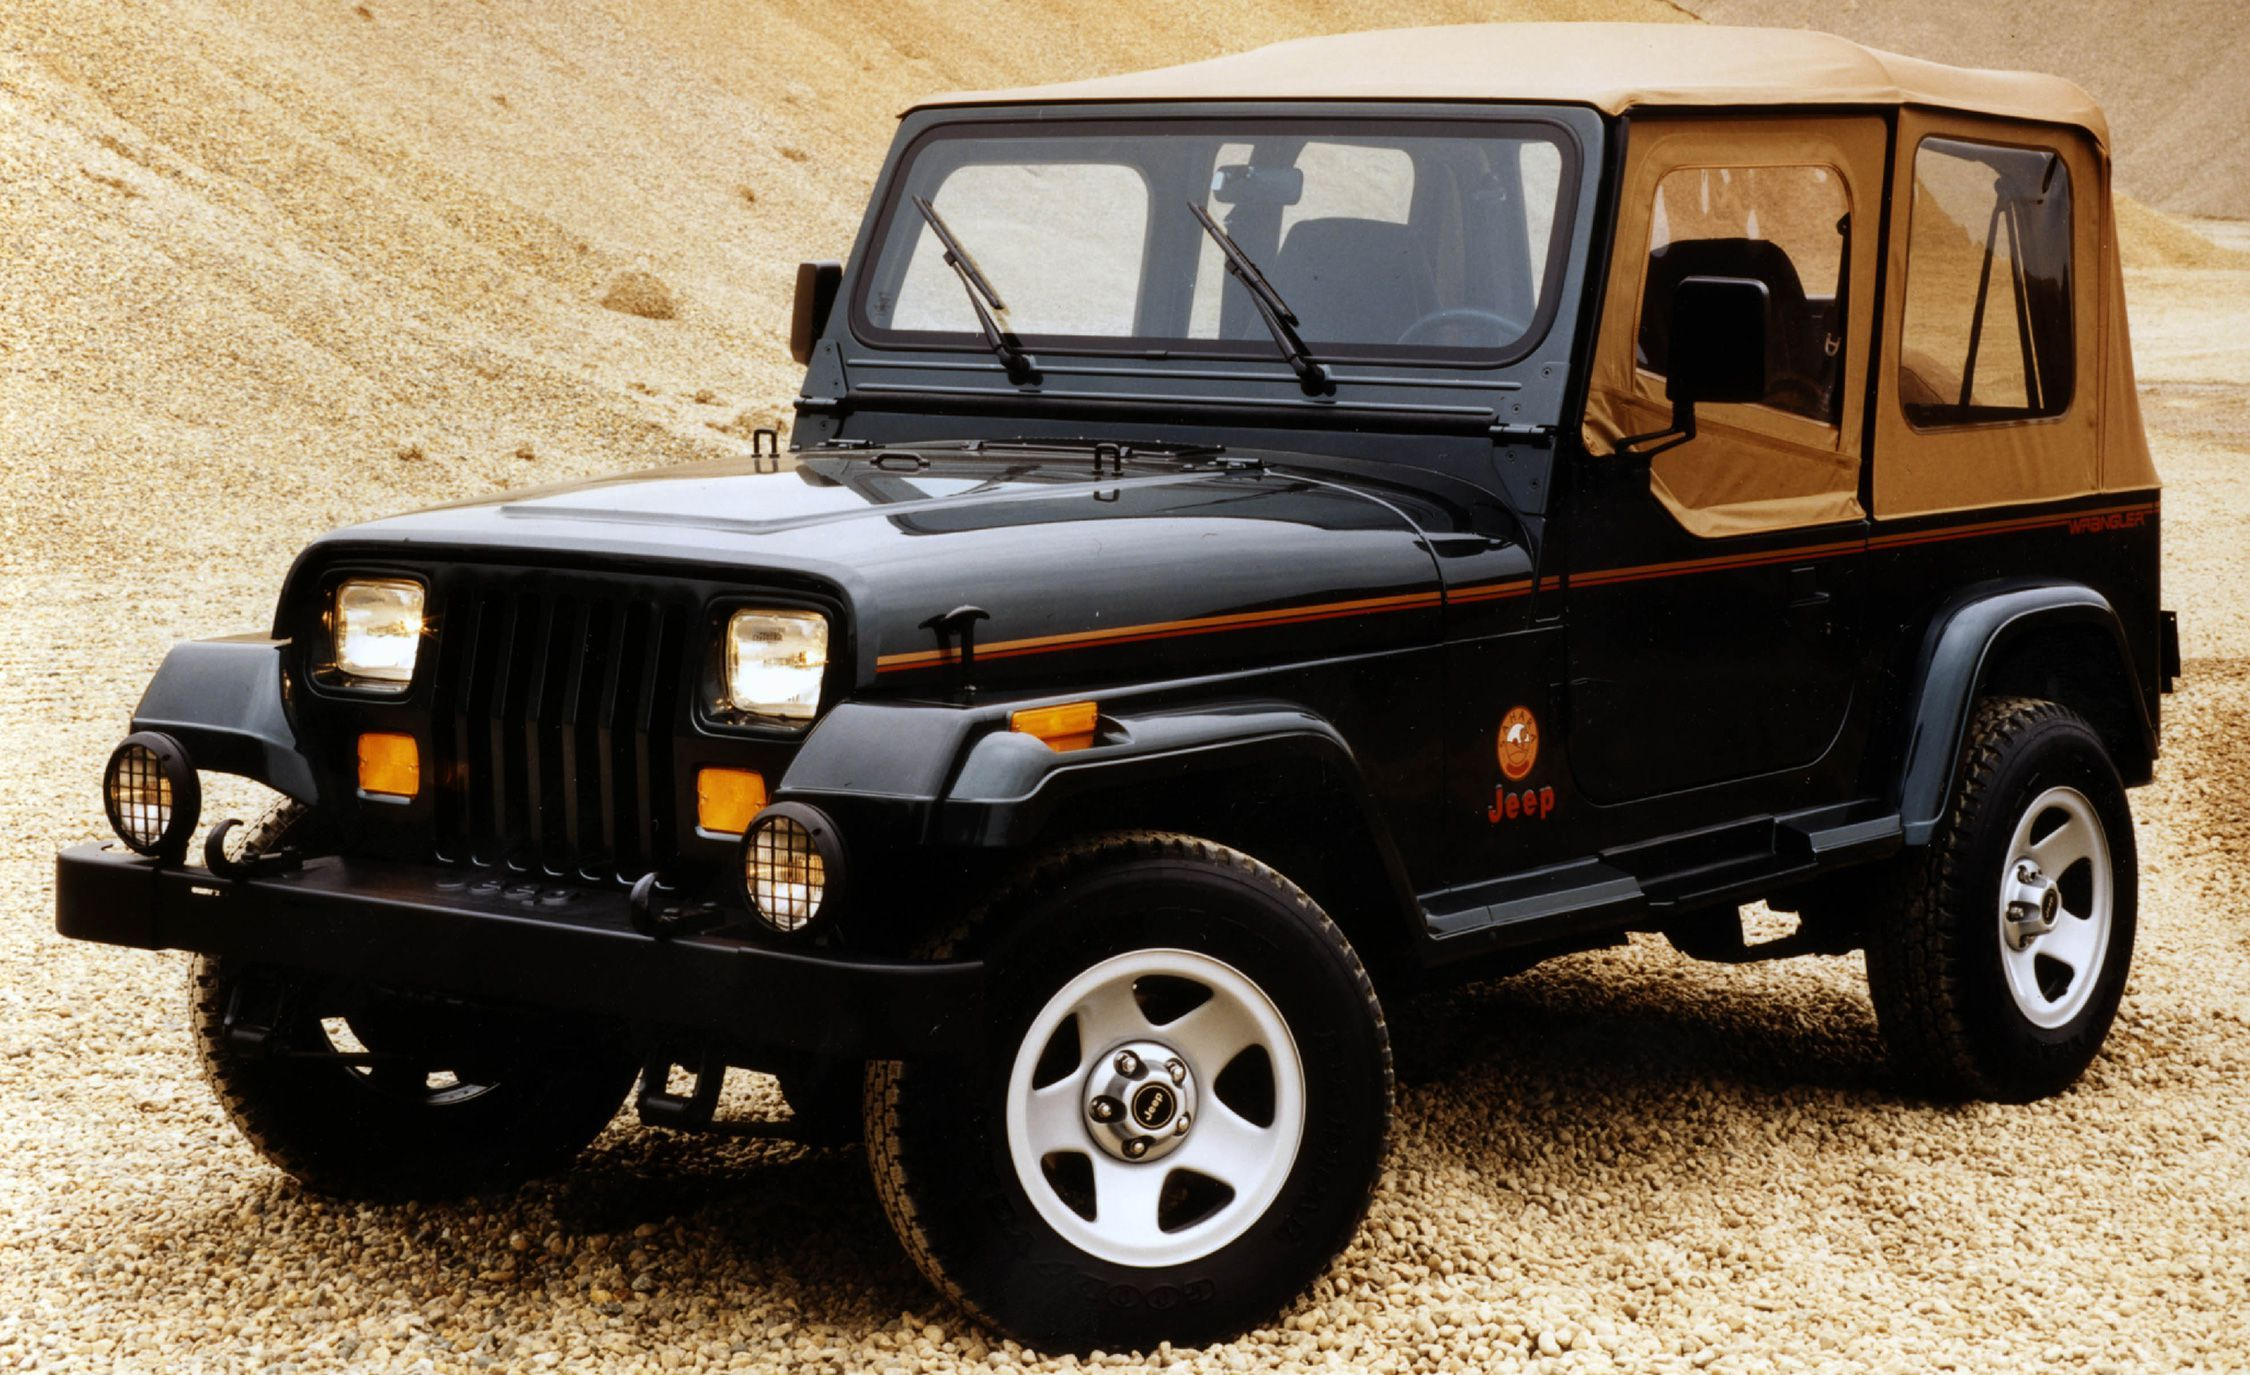 The Complete Visual History Of The Jeep Wrangler From 1986 To